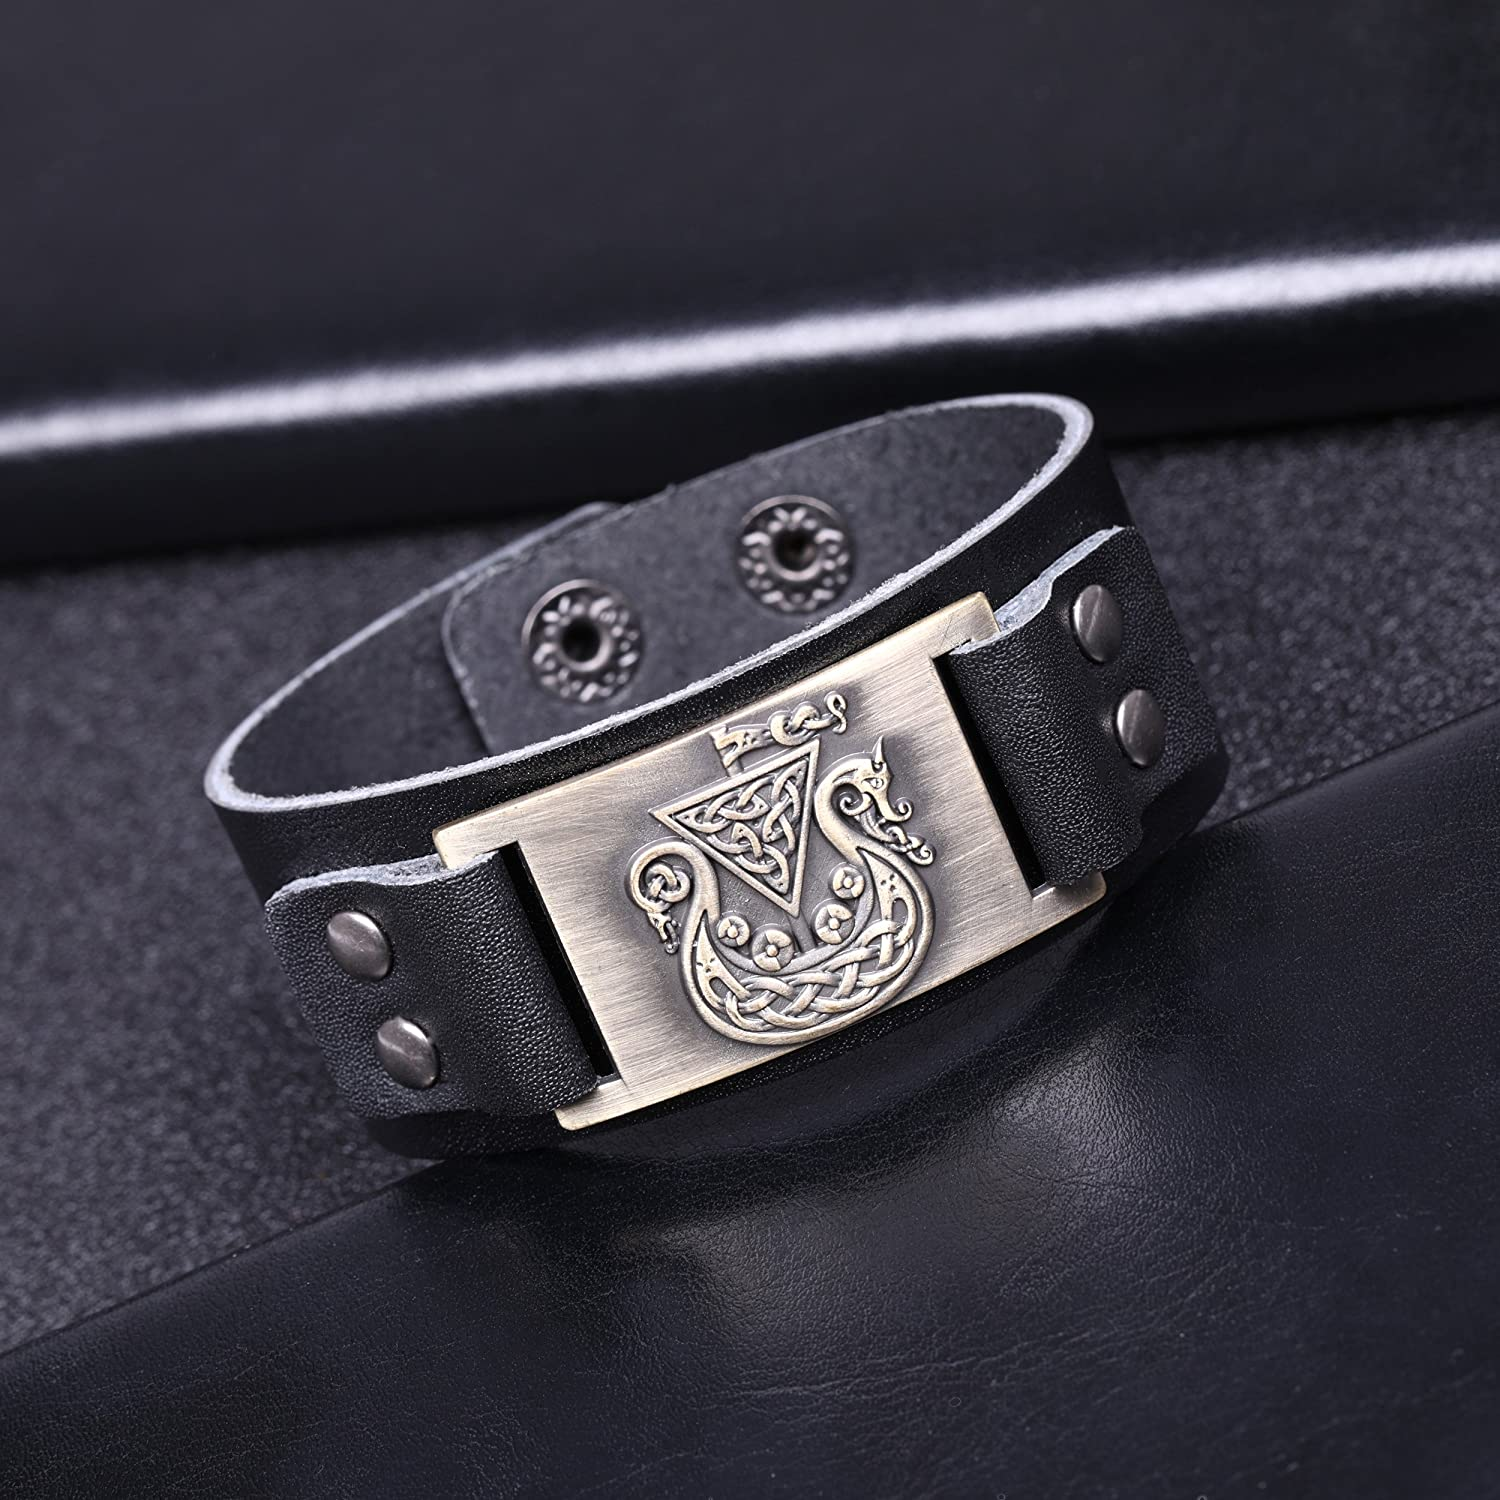 TEAMER Viking Pirate Ship Celtic Knot Leather Bracelet Wristband Punk Unisex Cuff Bangle Women Men Jewelry